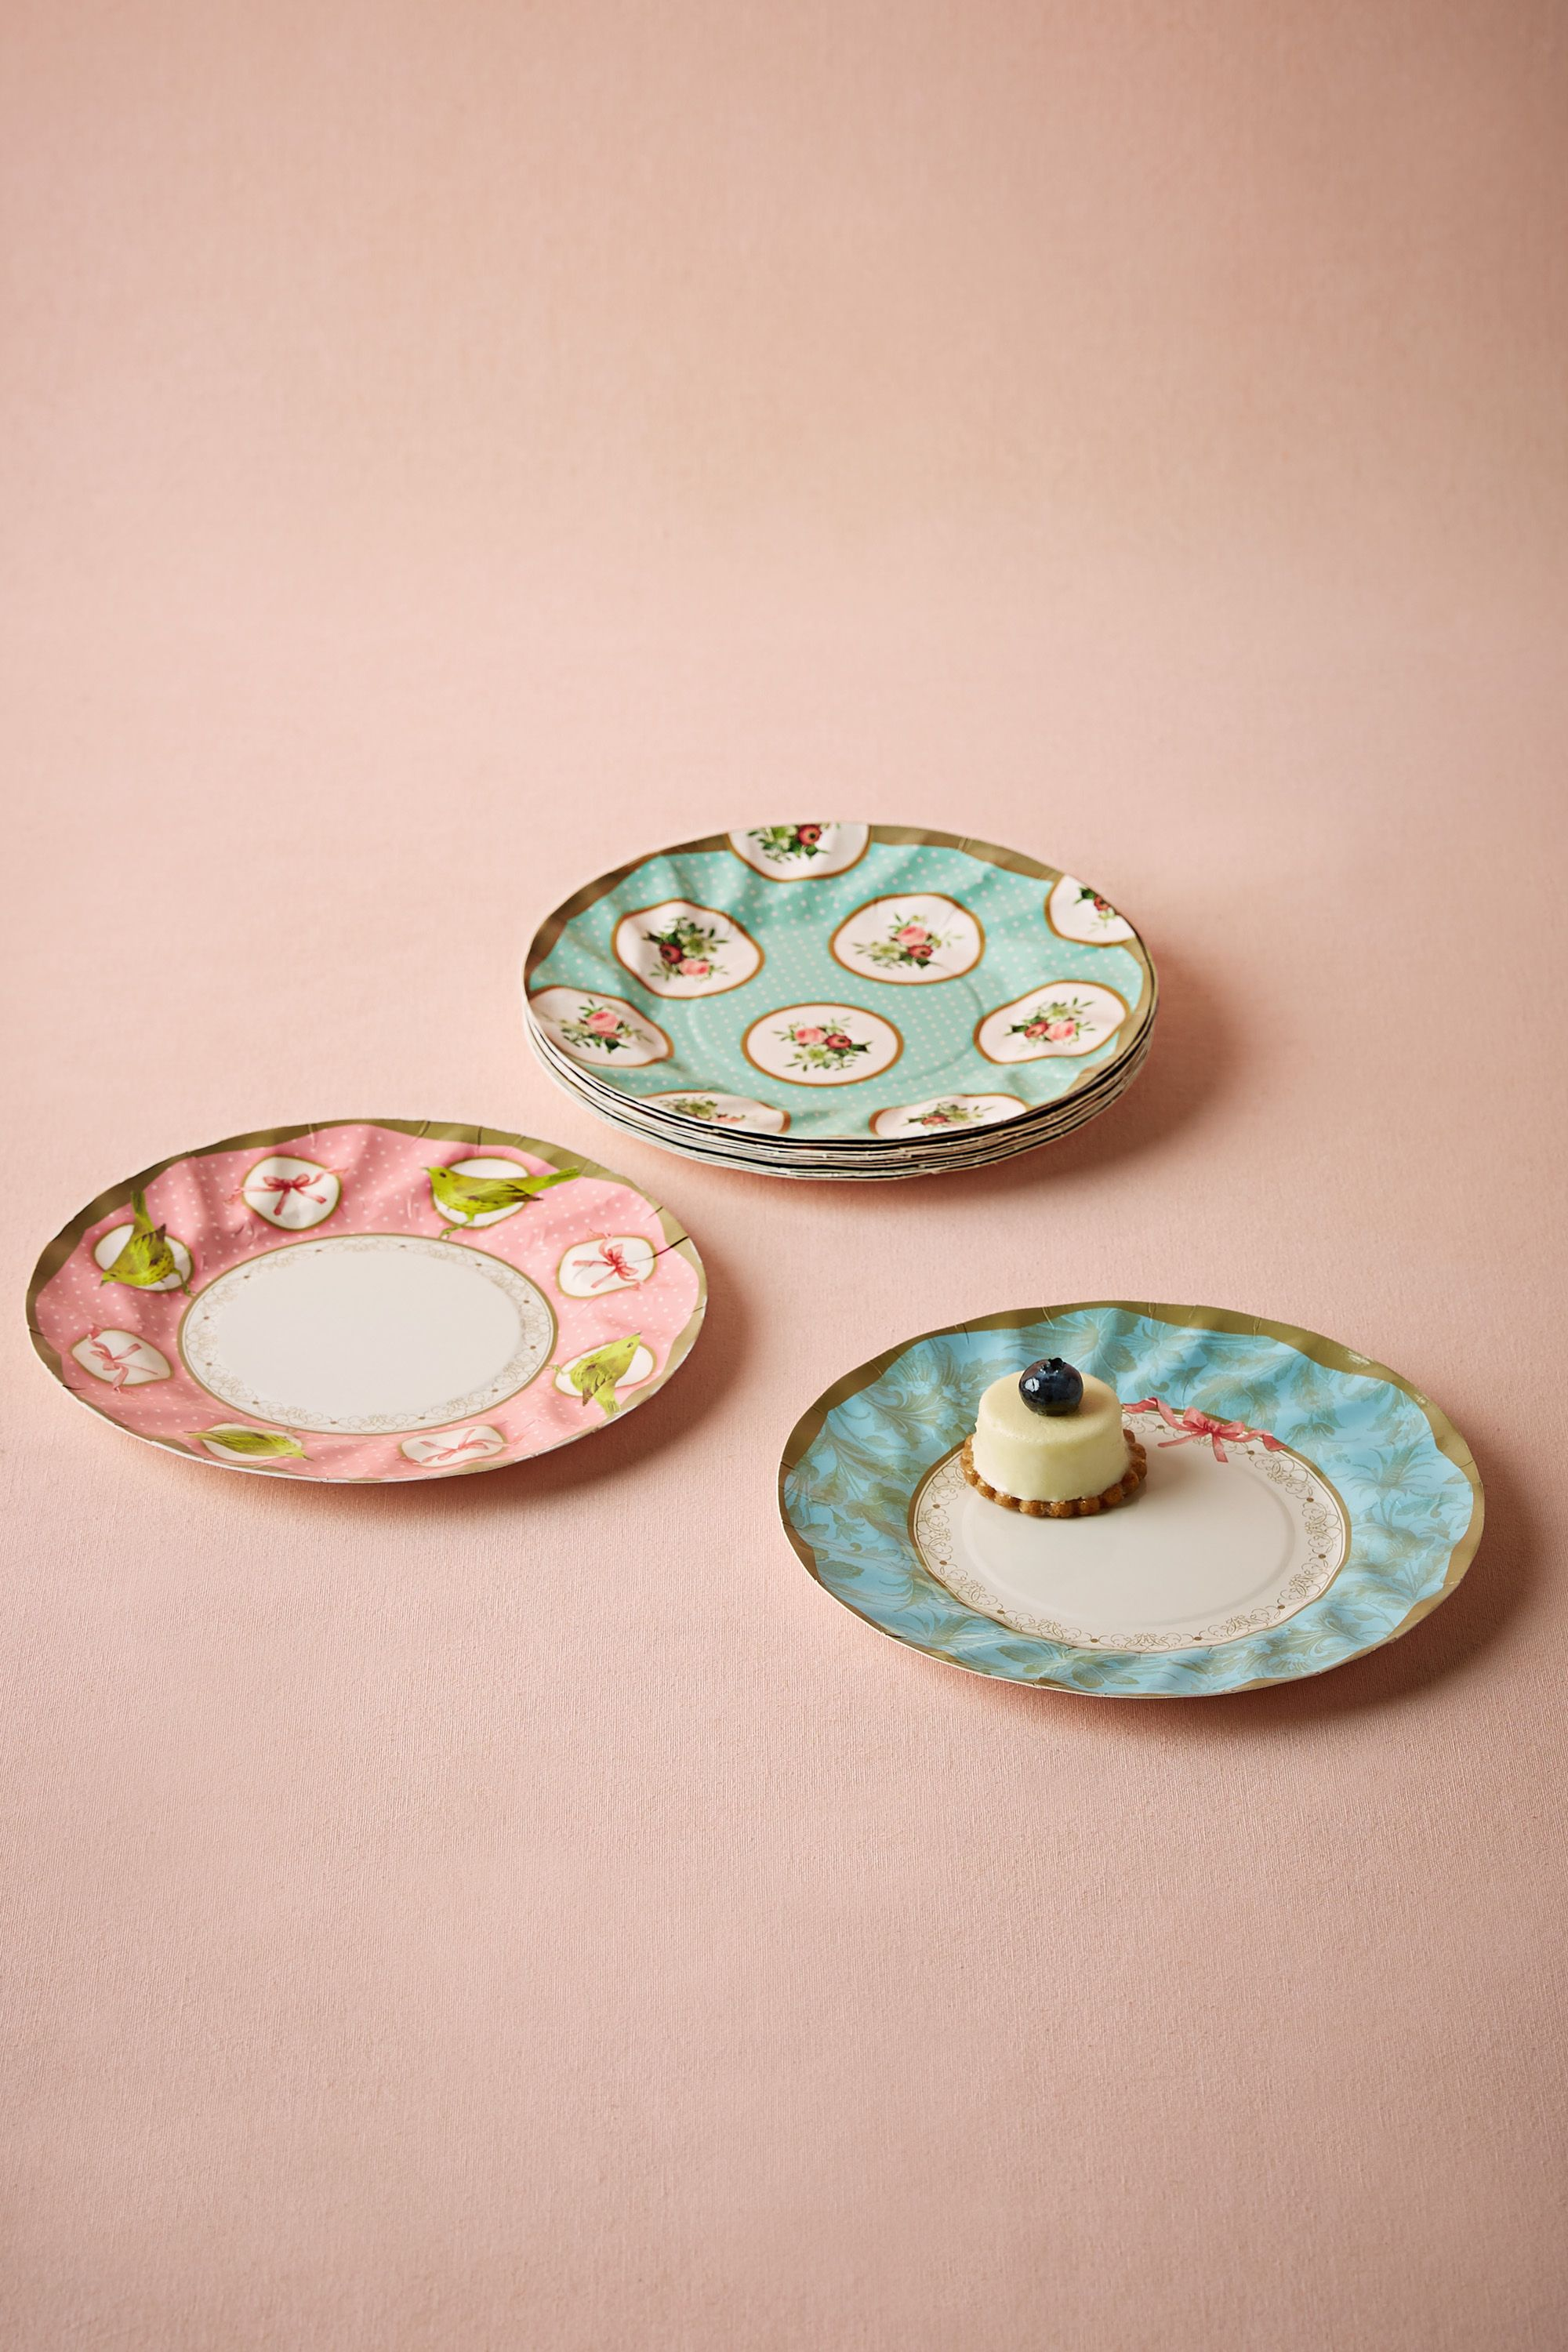 tea party paper plates Set of 12 floral tea cup party theme paper plates 8 gorgeous shades of mint  green, gold and pink with floral rose print perfect for your.